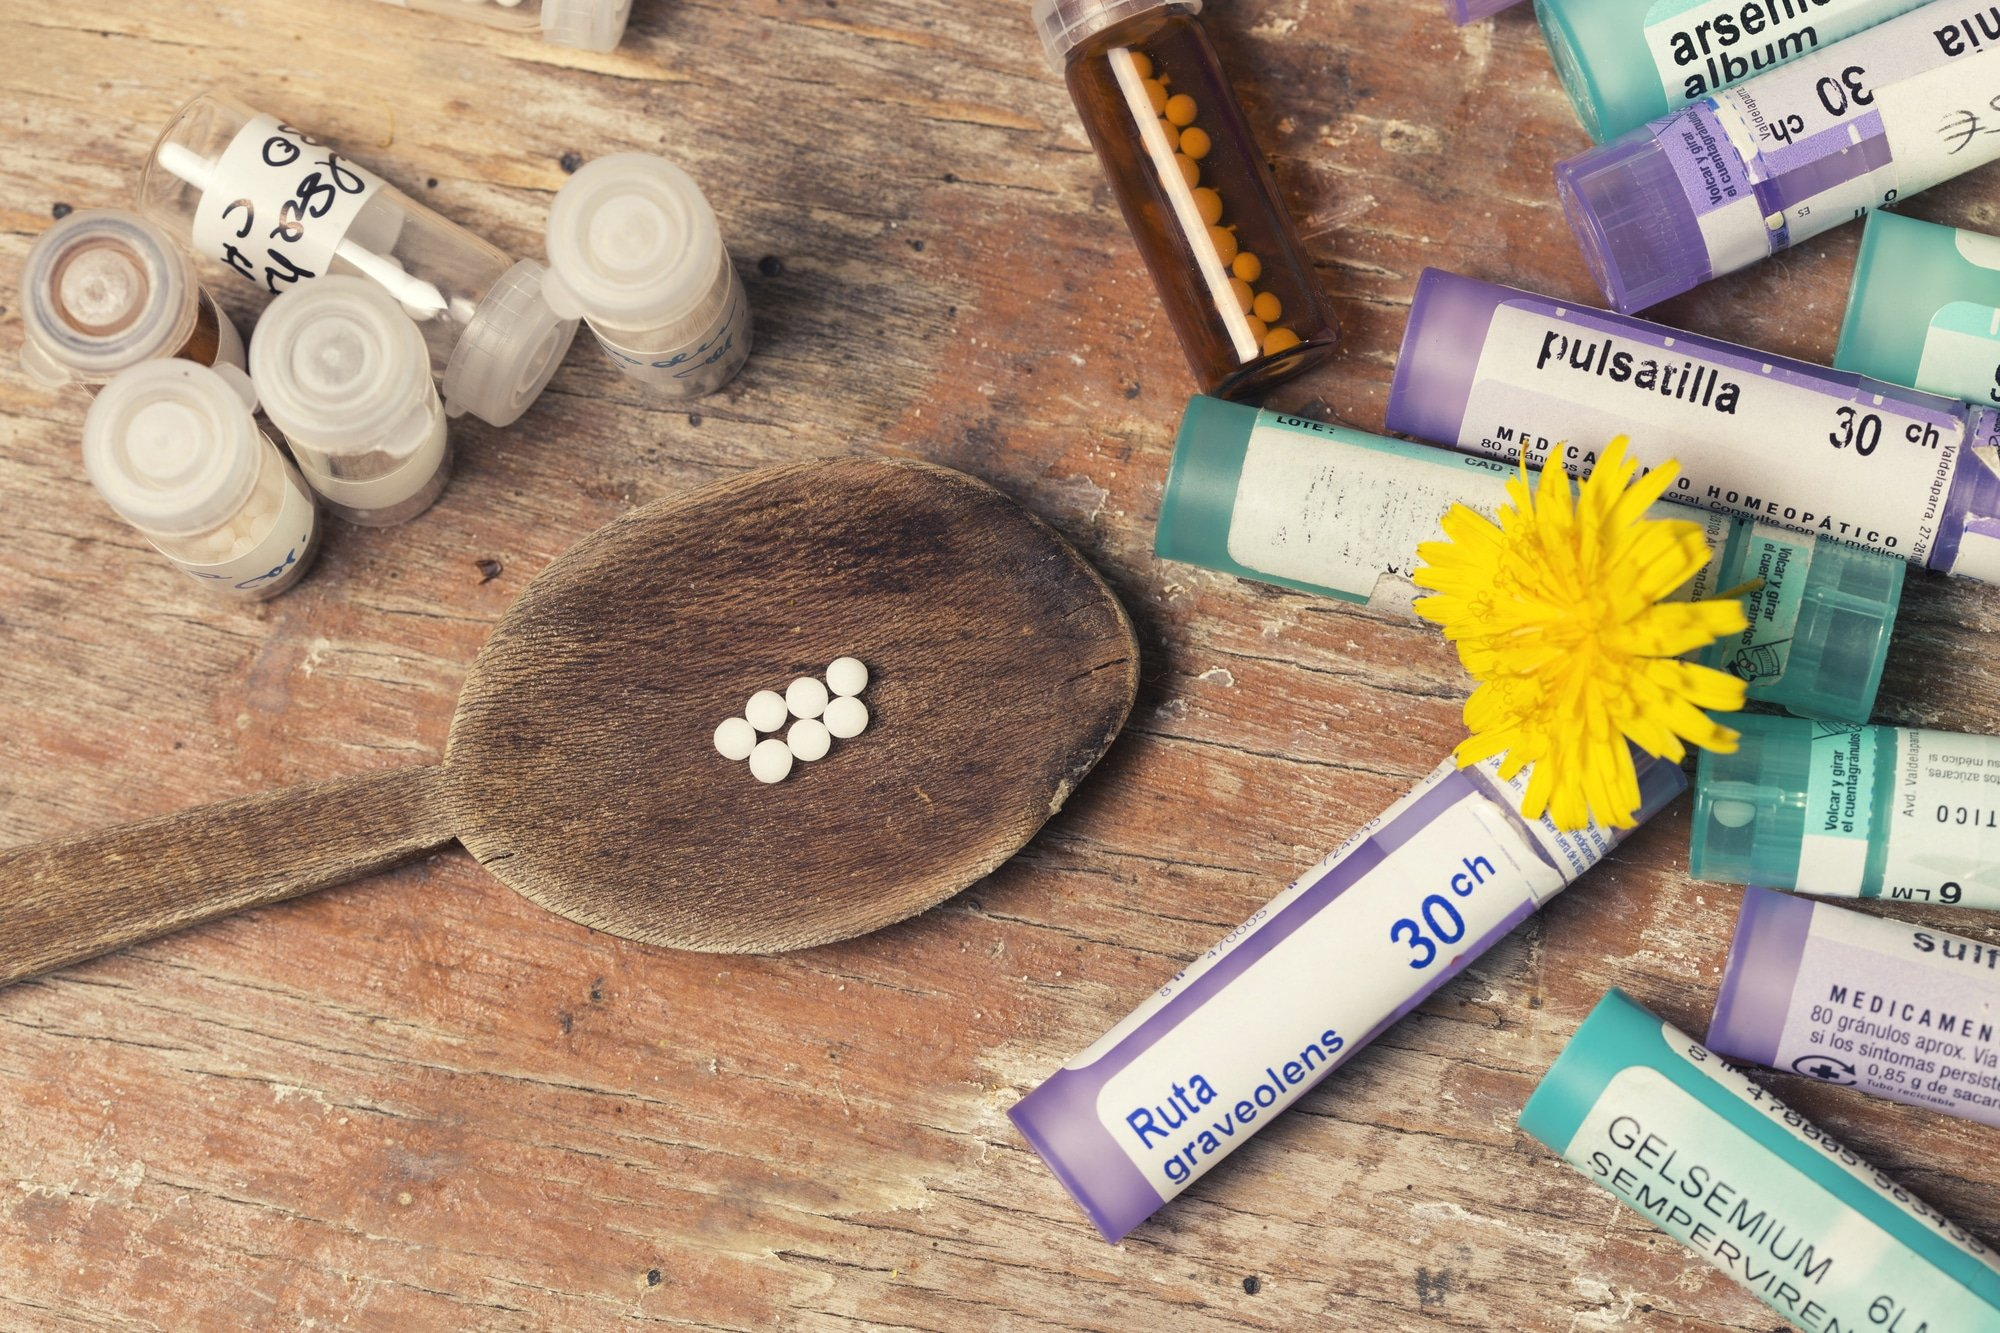 Australian Homeopathic Remedy Purchases